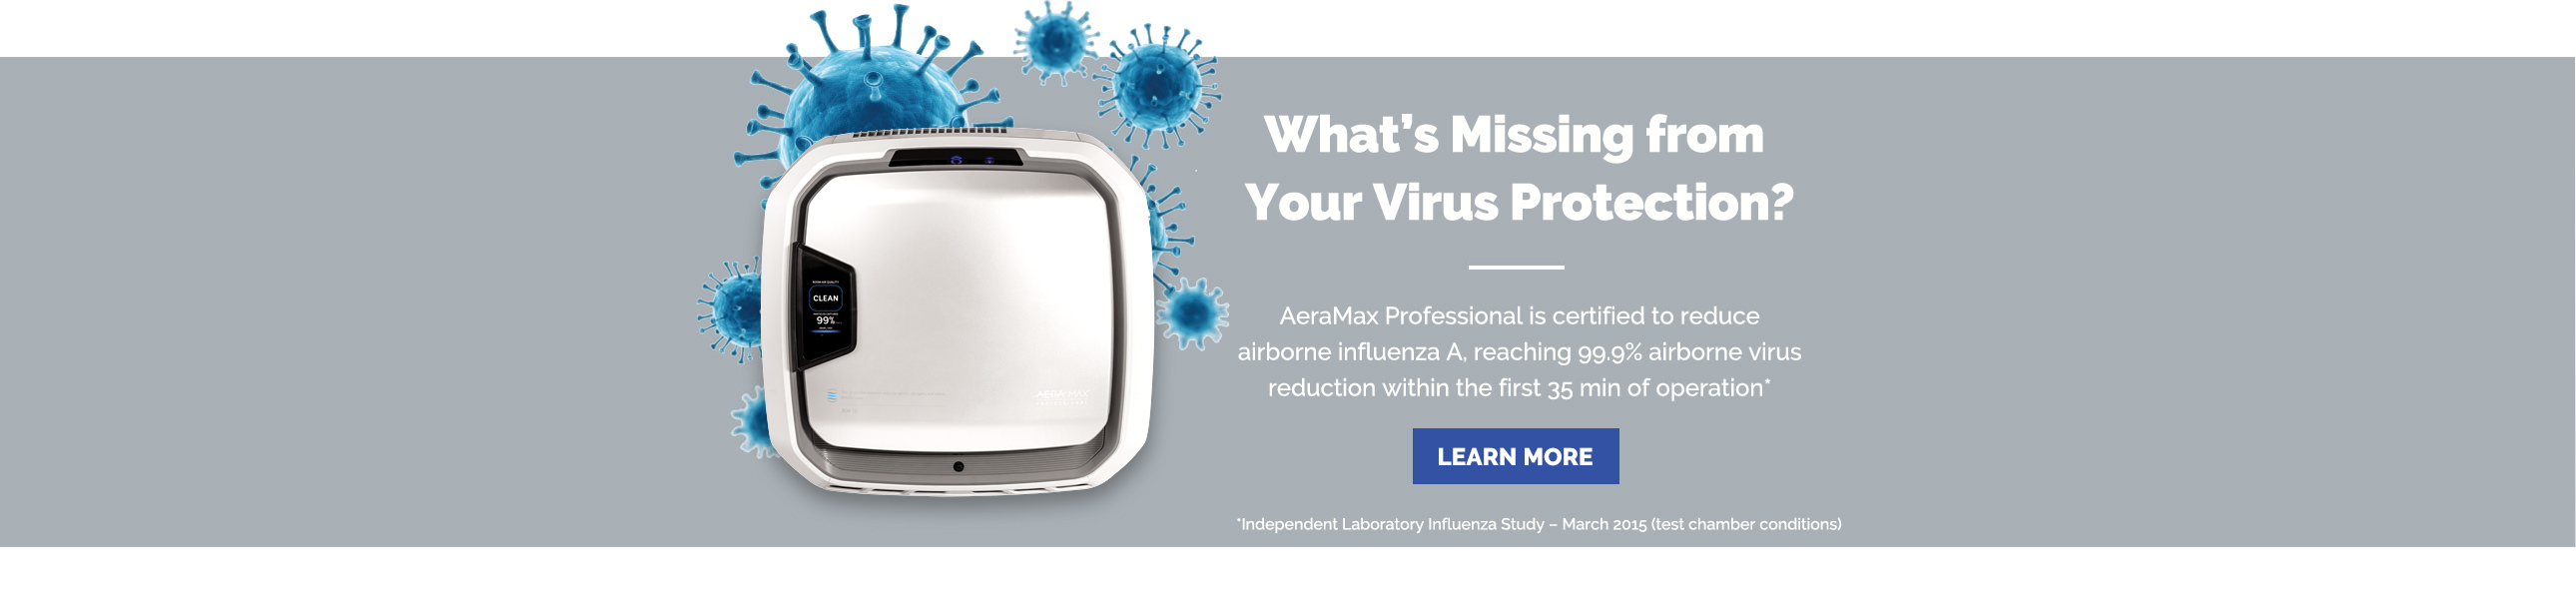 What's Missing from Your Virus Protection?